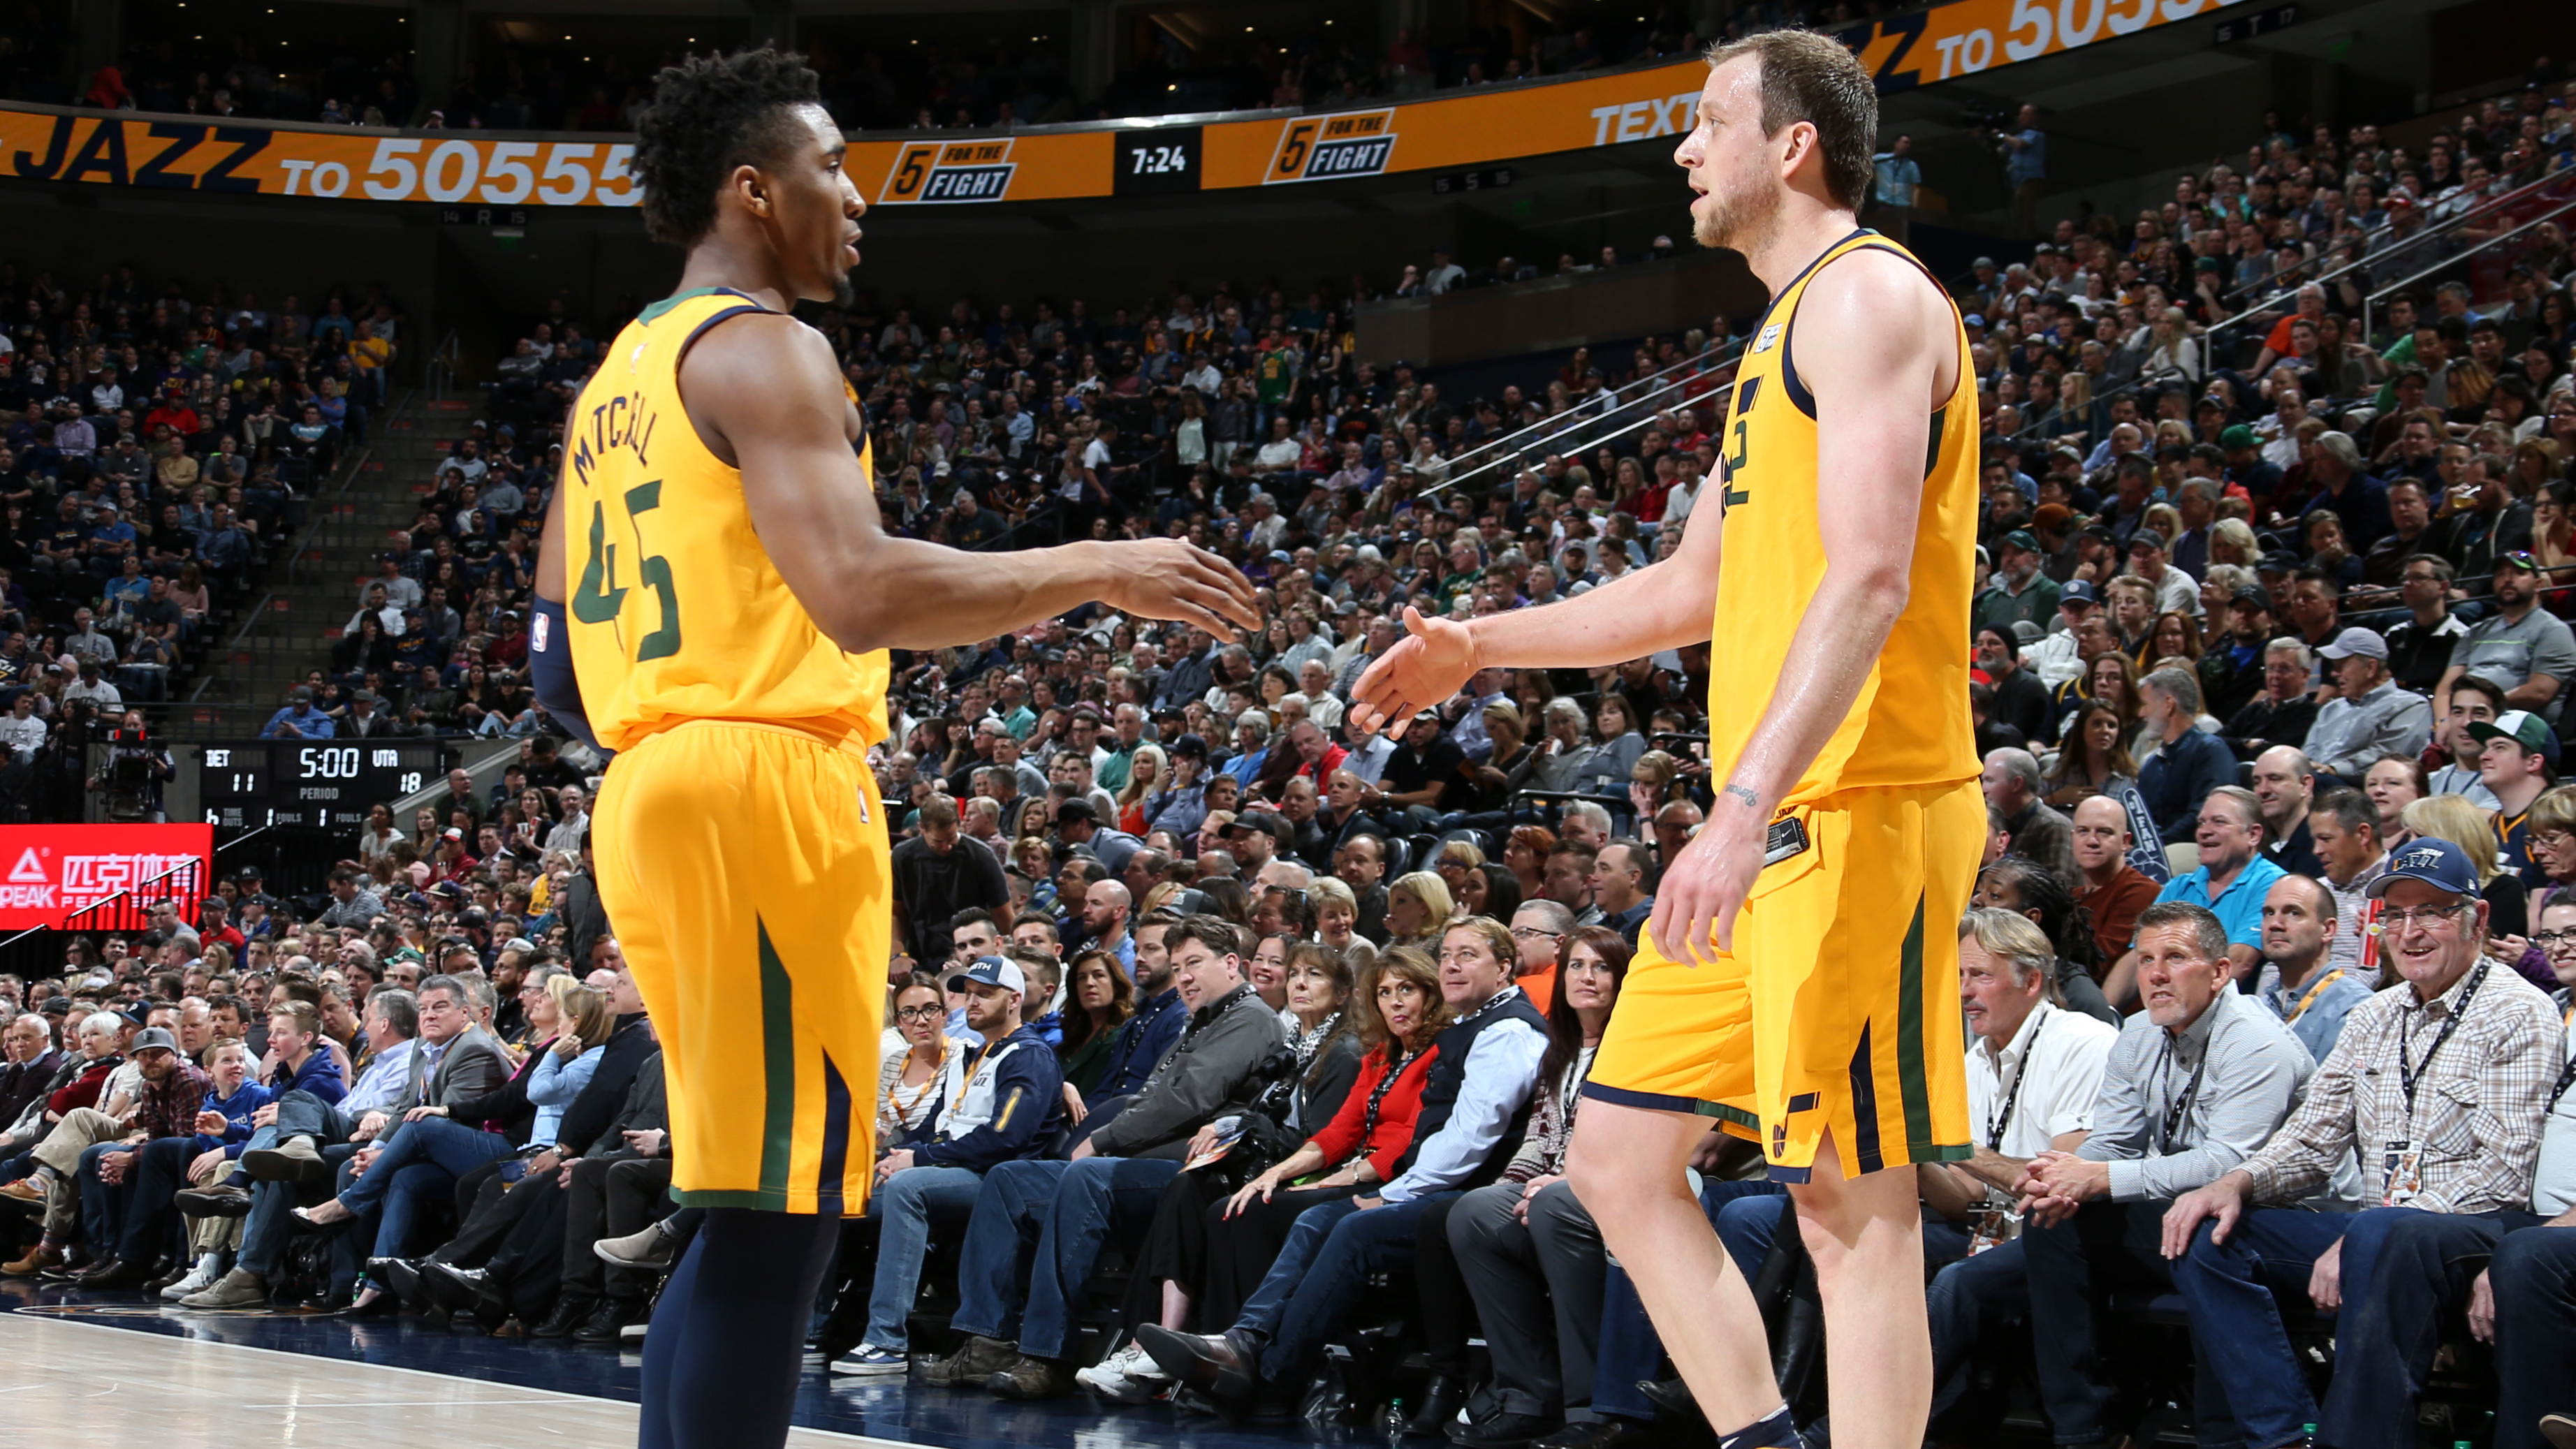 GAME RECAP: Jazz 110, Pistons 79